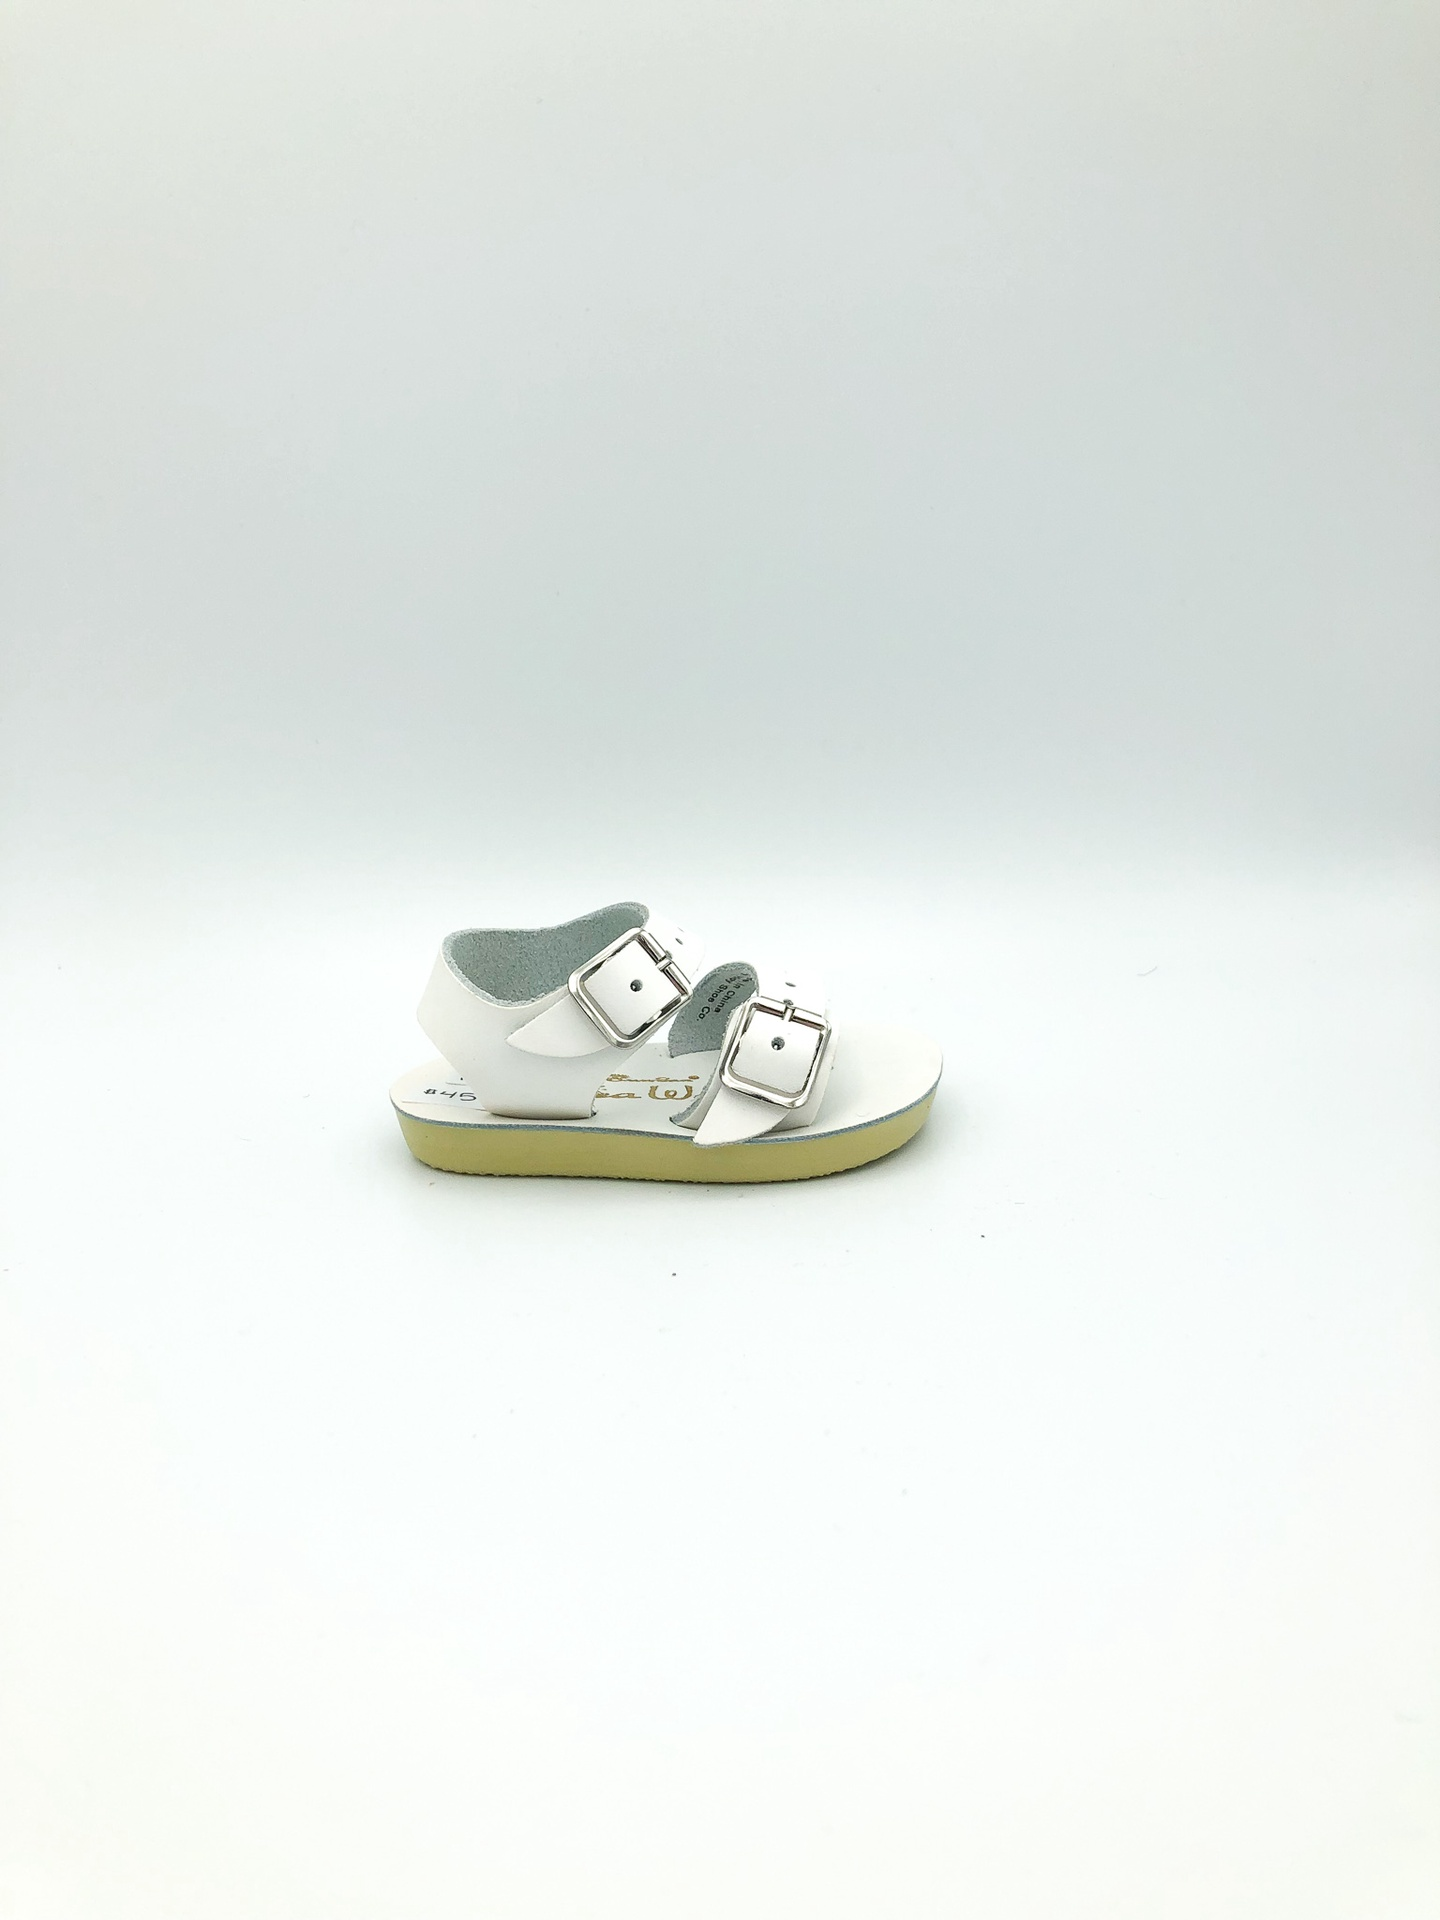 SALT WATER SANDALS - SEA WEES IN WHITE (INFANT 1-3)